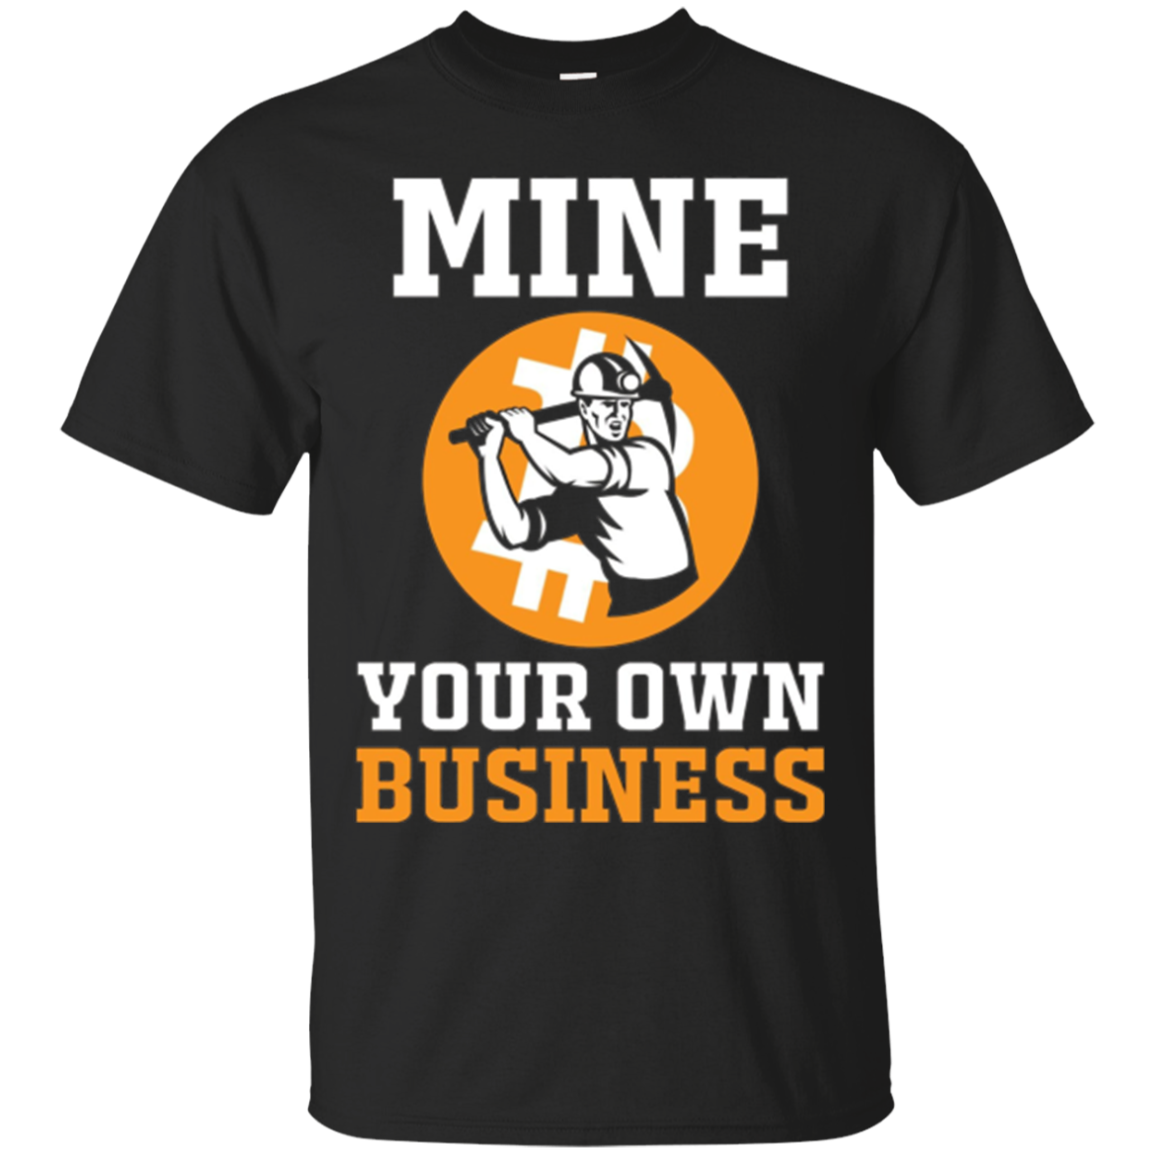 Mine Your Own Business Bitcoin T-Shirt for Bitcoin Hustlers